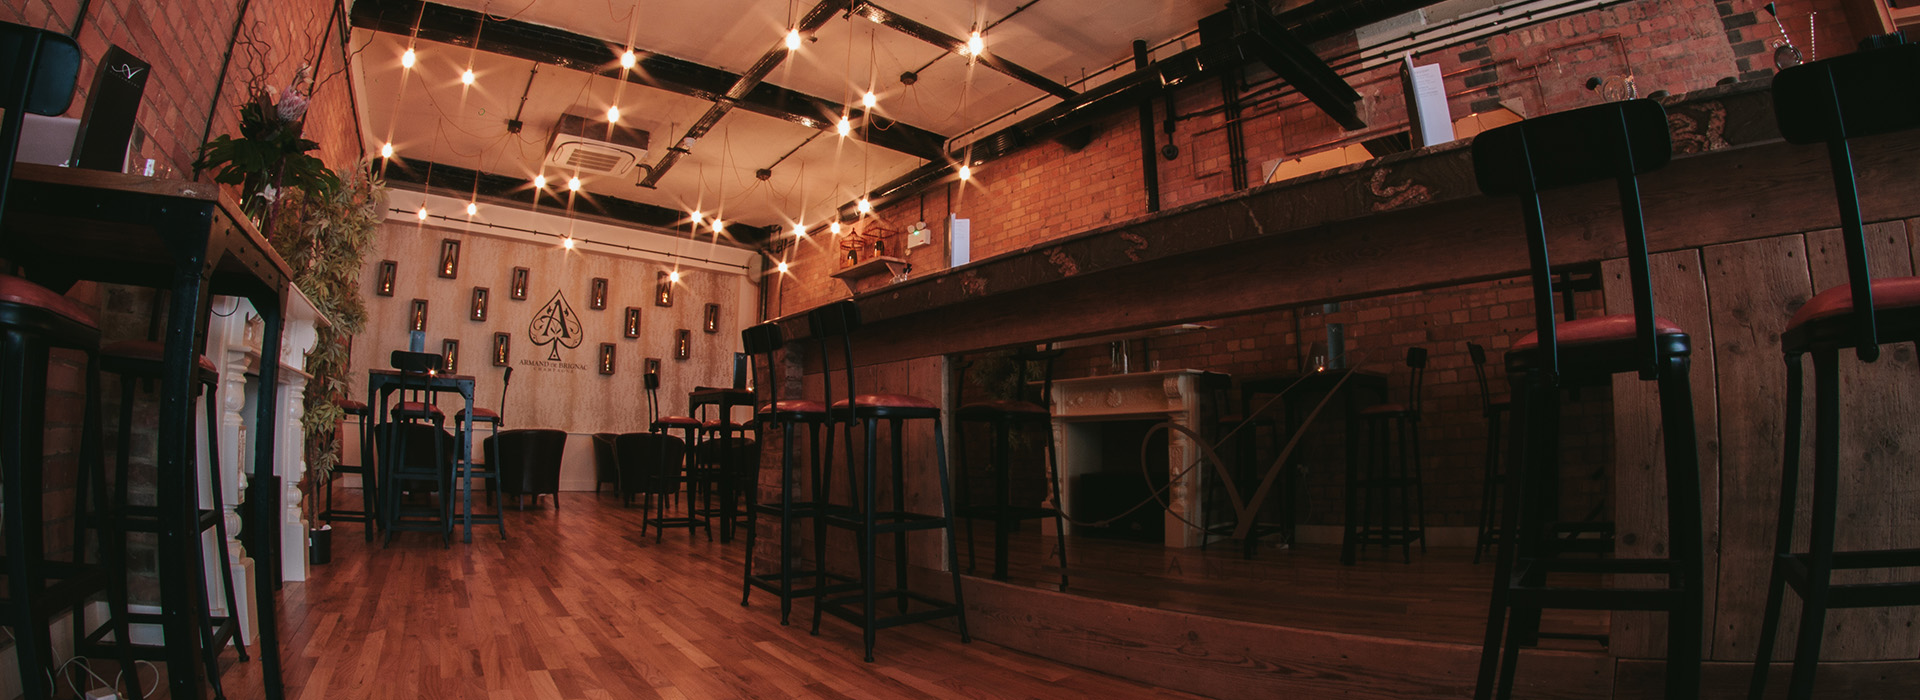 Alexander's Bar - Sophisticated and Rustic